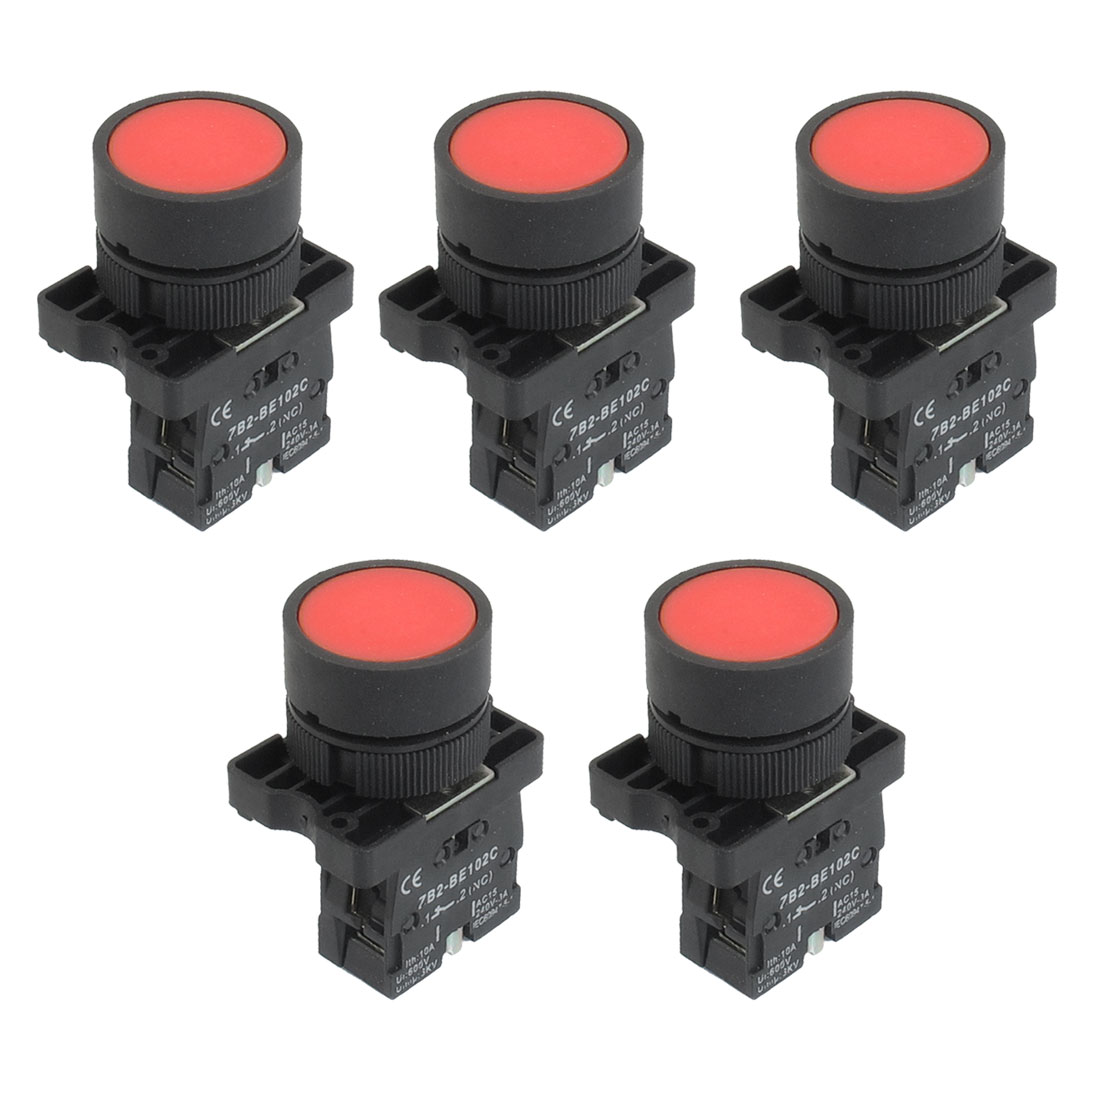 5 x 22mm 1 NC N/C Red Sign Momentary Push Button Switch 600V 10A ZB2-EA42